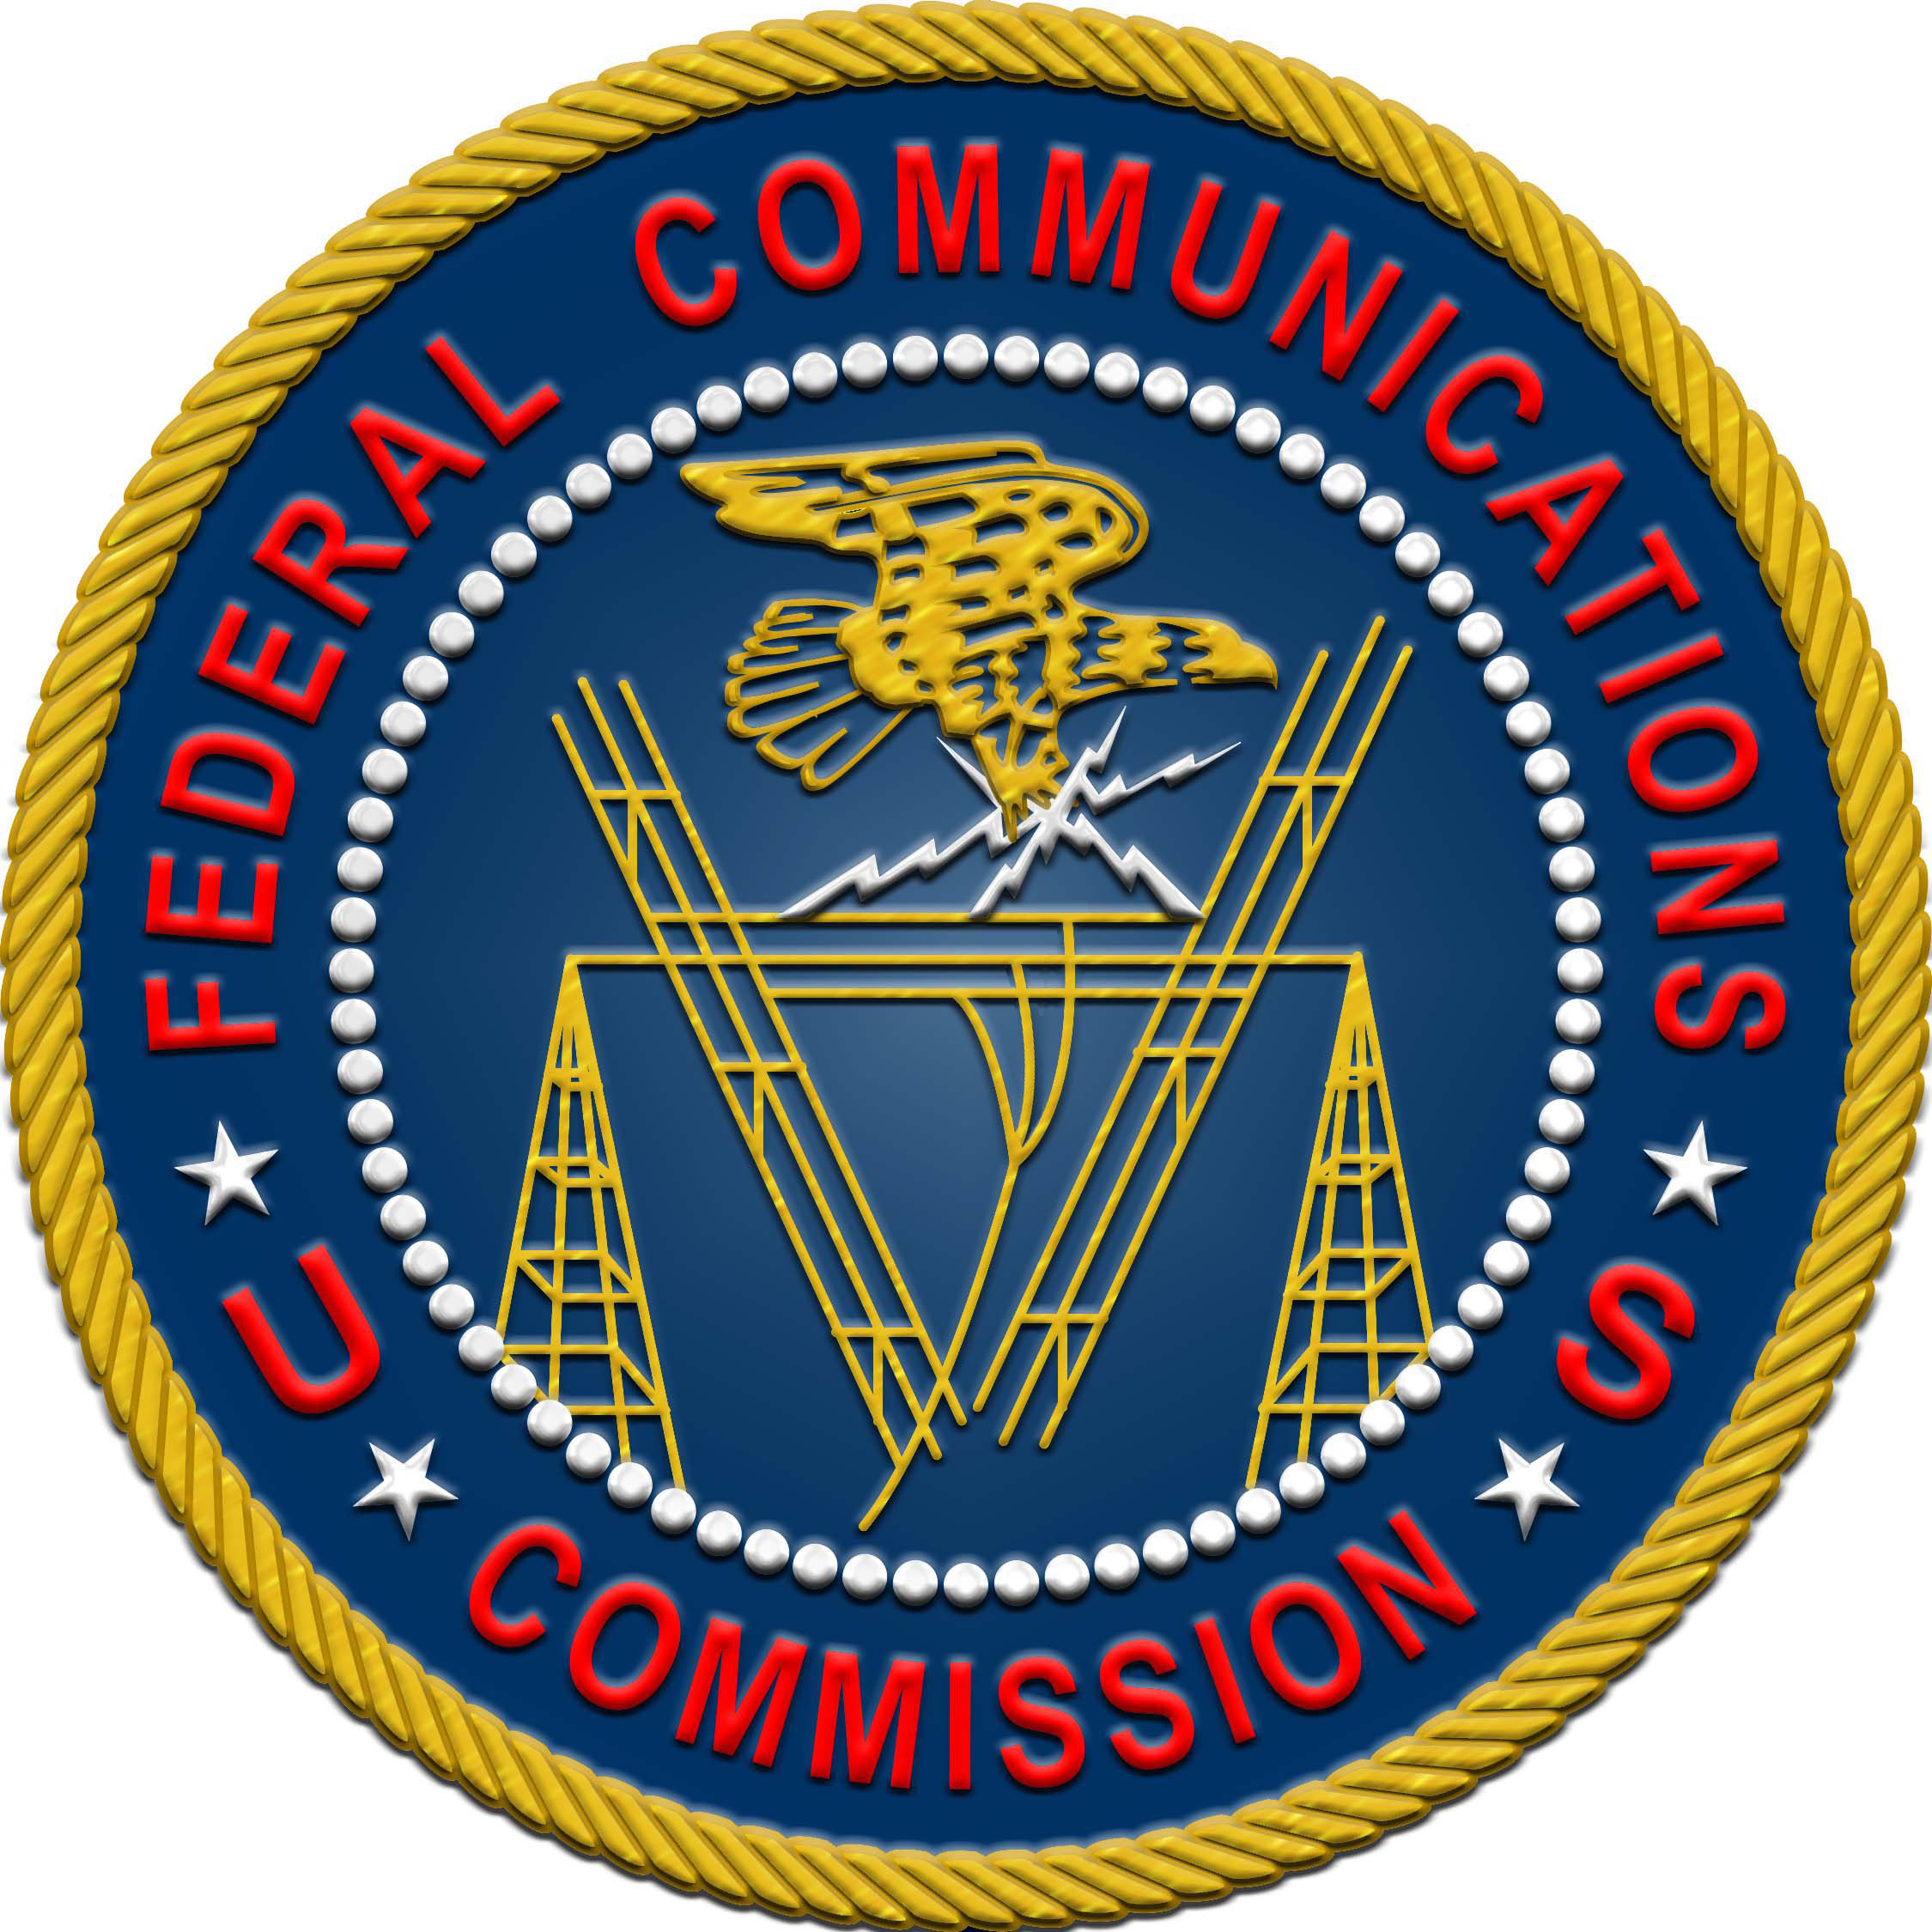 Logos Of The Fcc Federal Communications Commission Electrical And Electronic Symbols Pdf 200x200px 300ppi